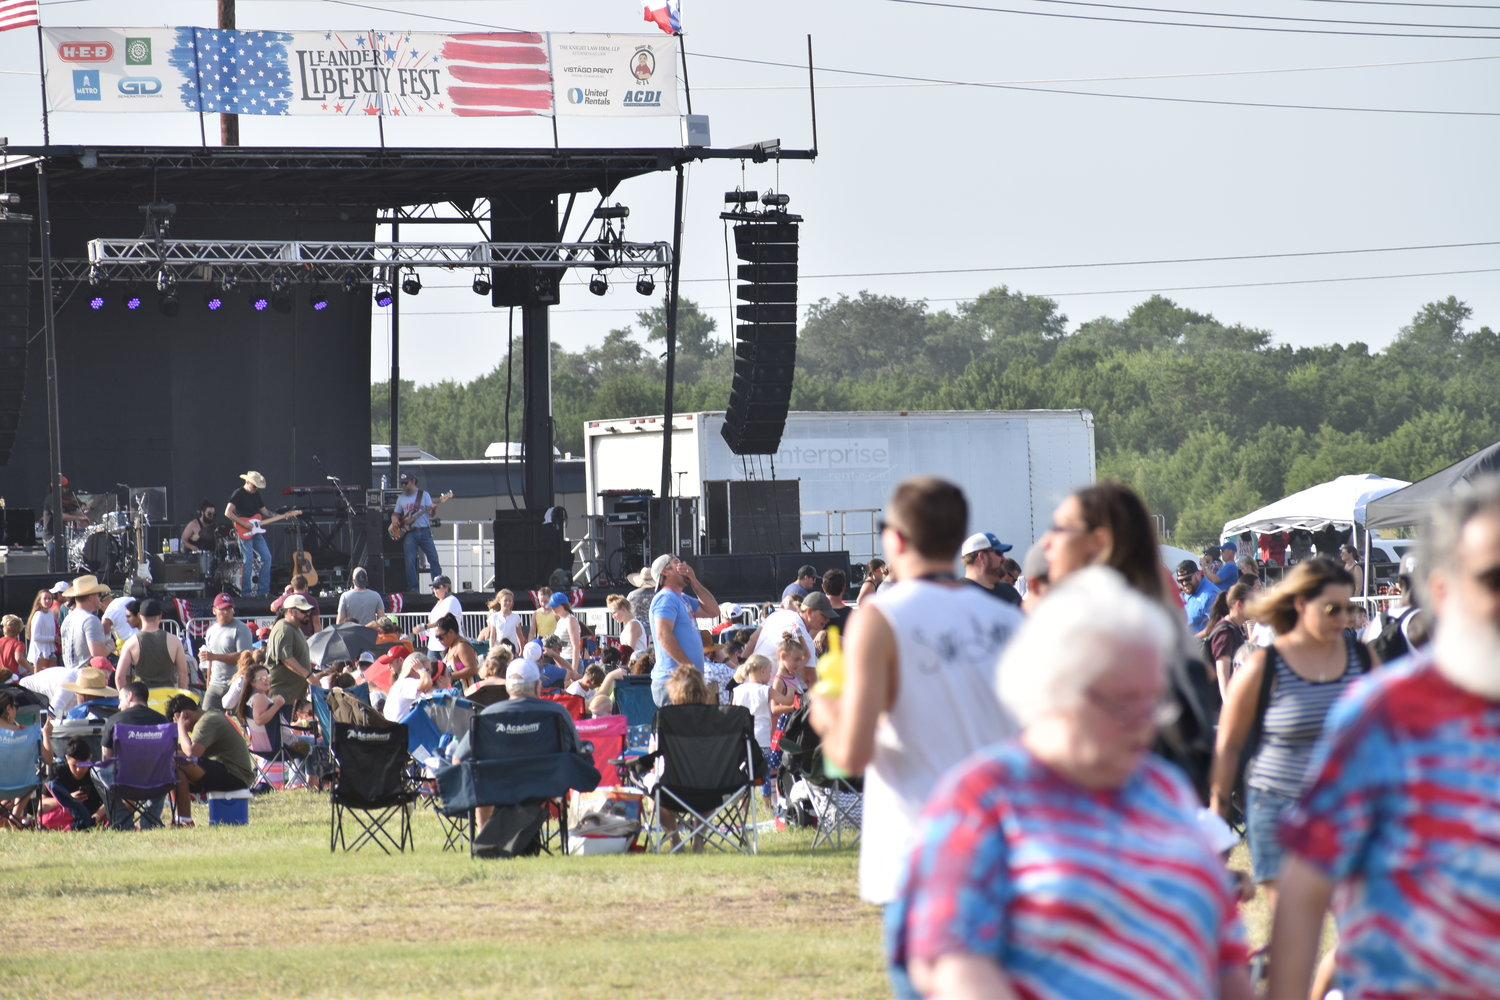 The stage set up by the city for musical performances by Jason Boland & The Stragglers and Mike Ryan during Liberty Fest in Leander on Thursday.